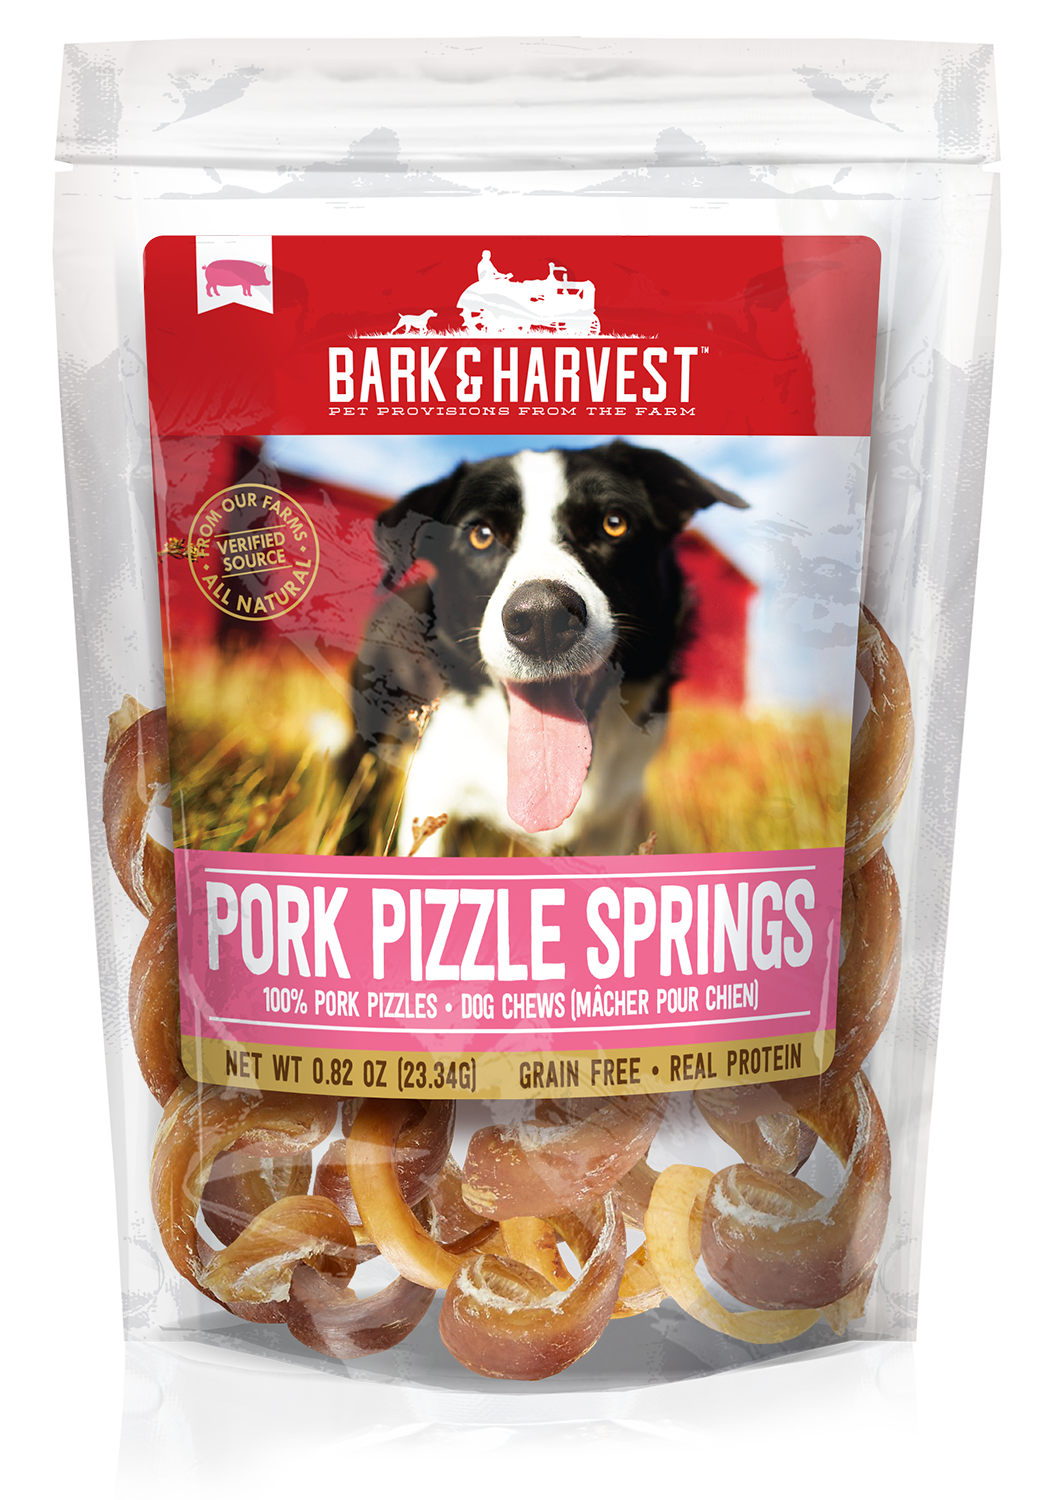 Bark and Harvest Pork Pizzle Springs 5 count bag